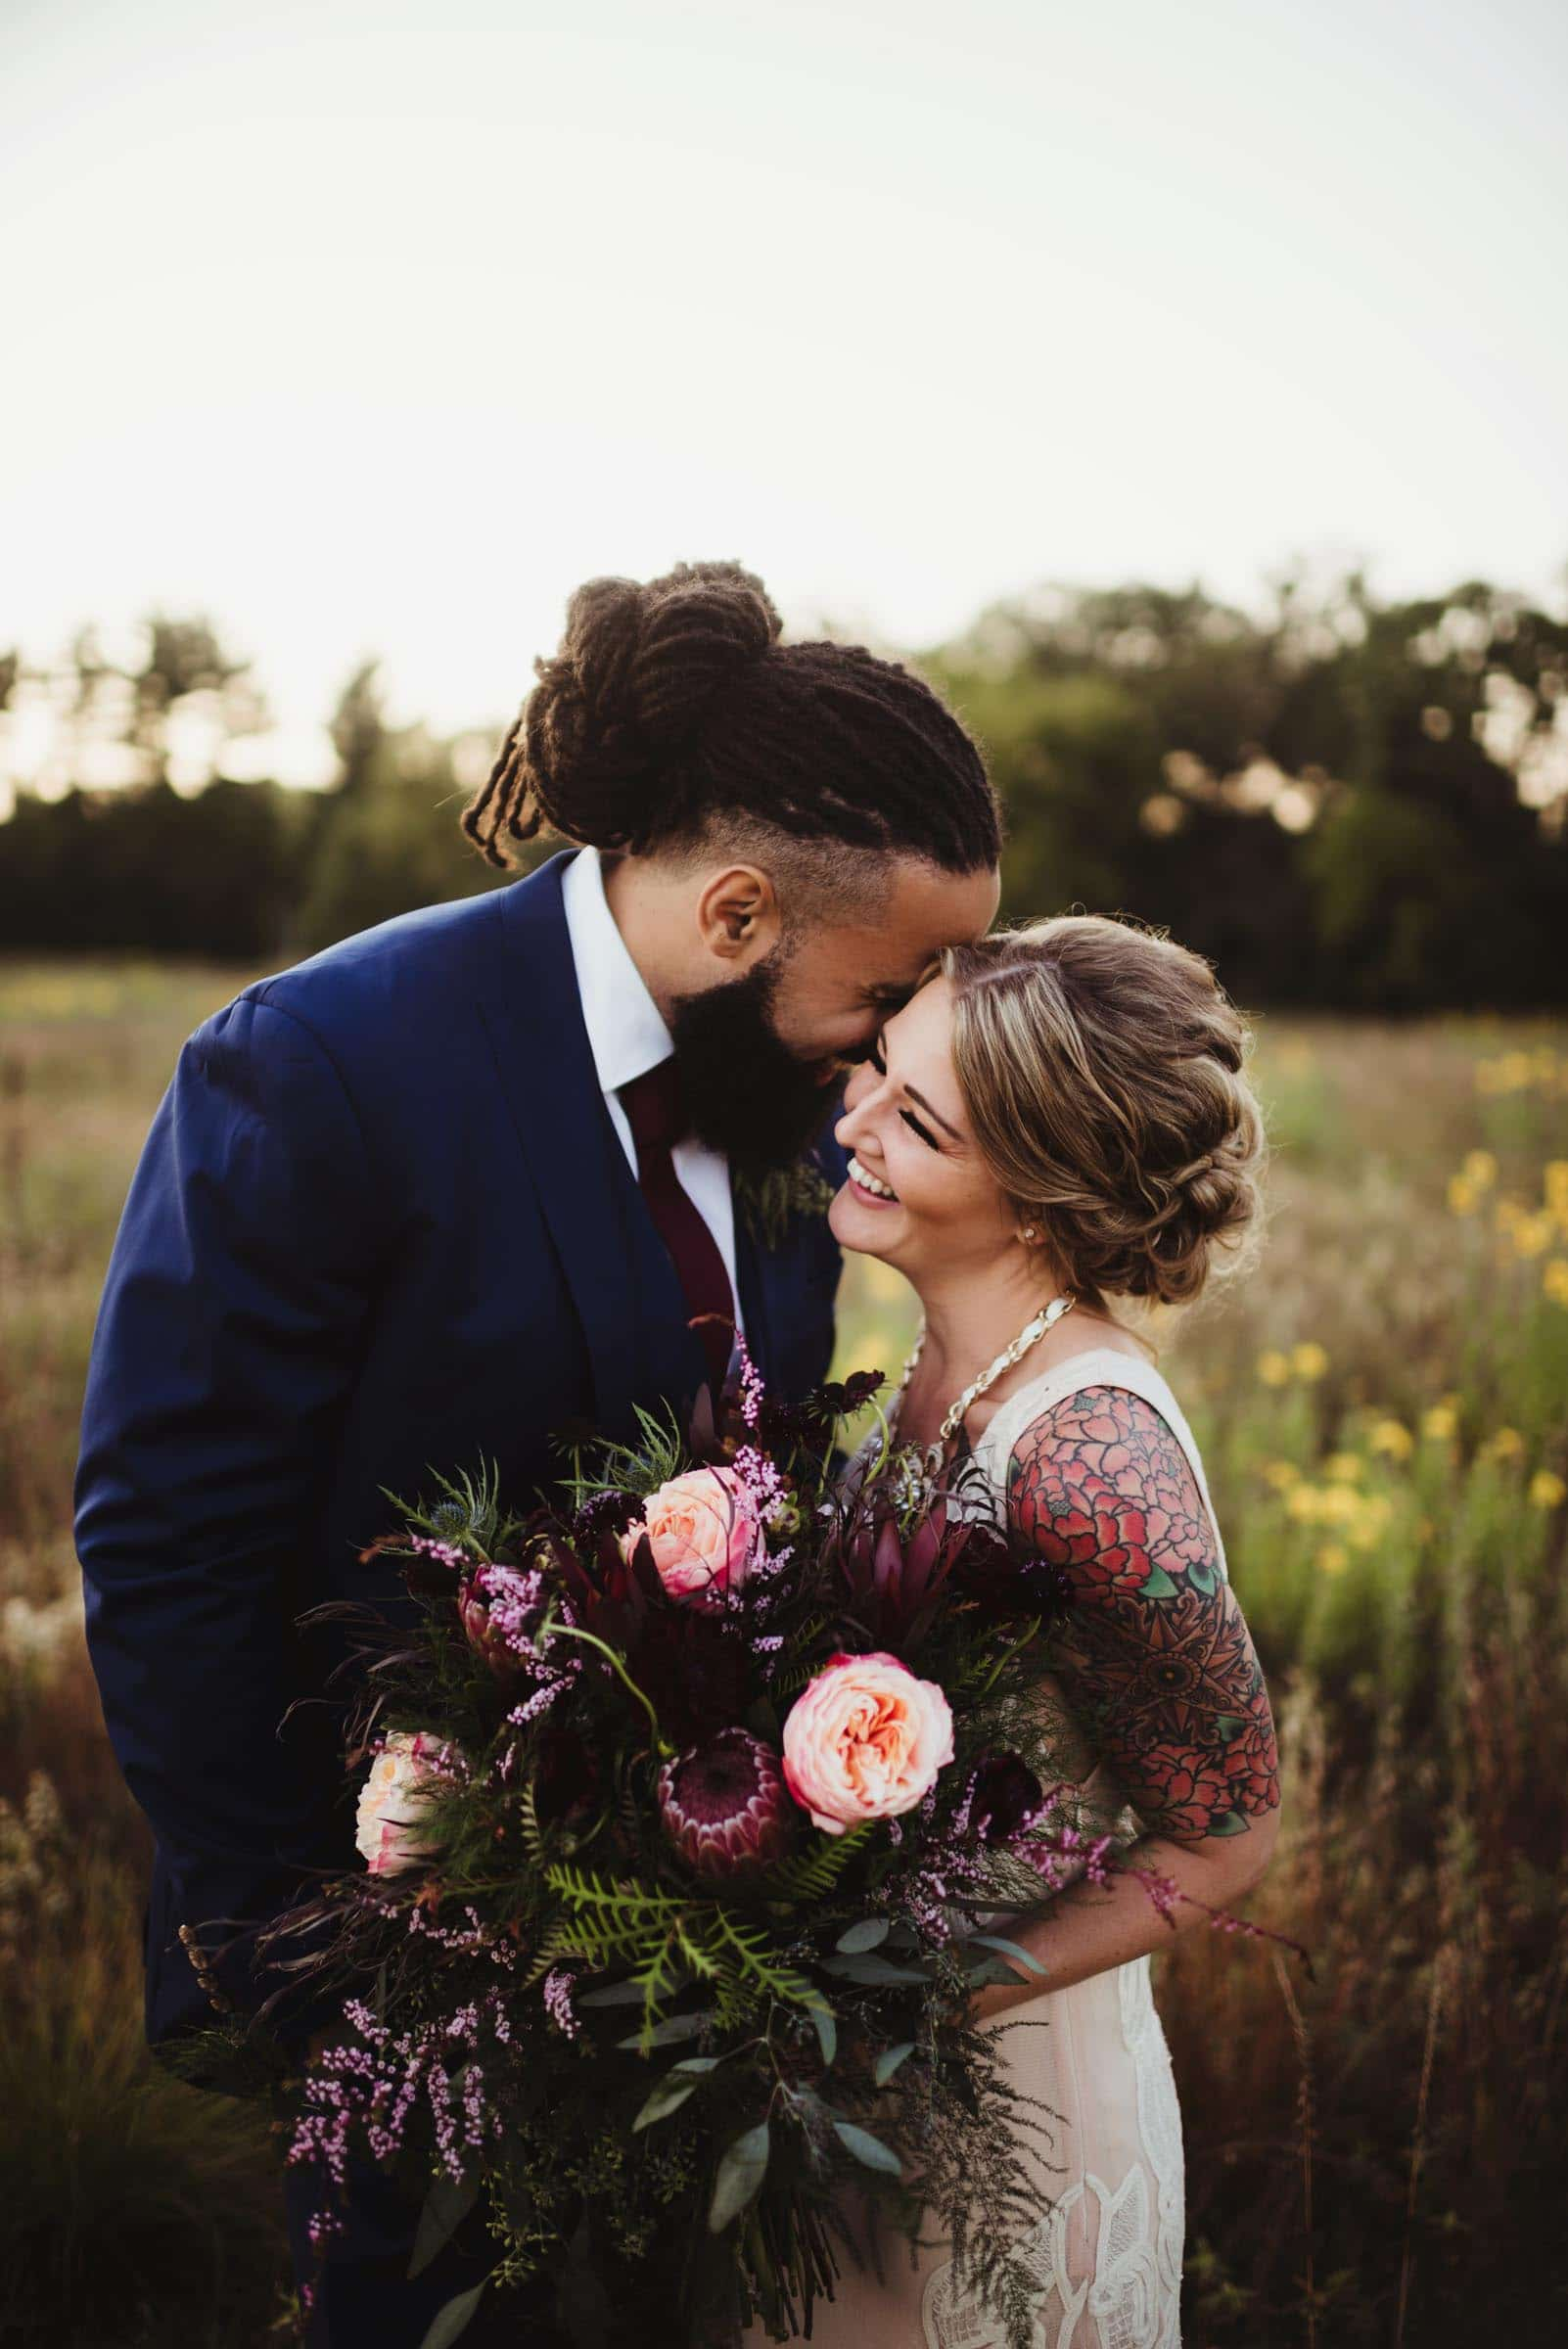 tattoo bride with huge bouquet snuggling with groom in floral field